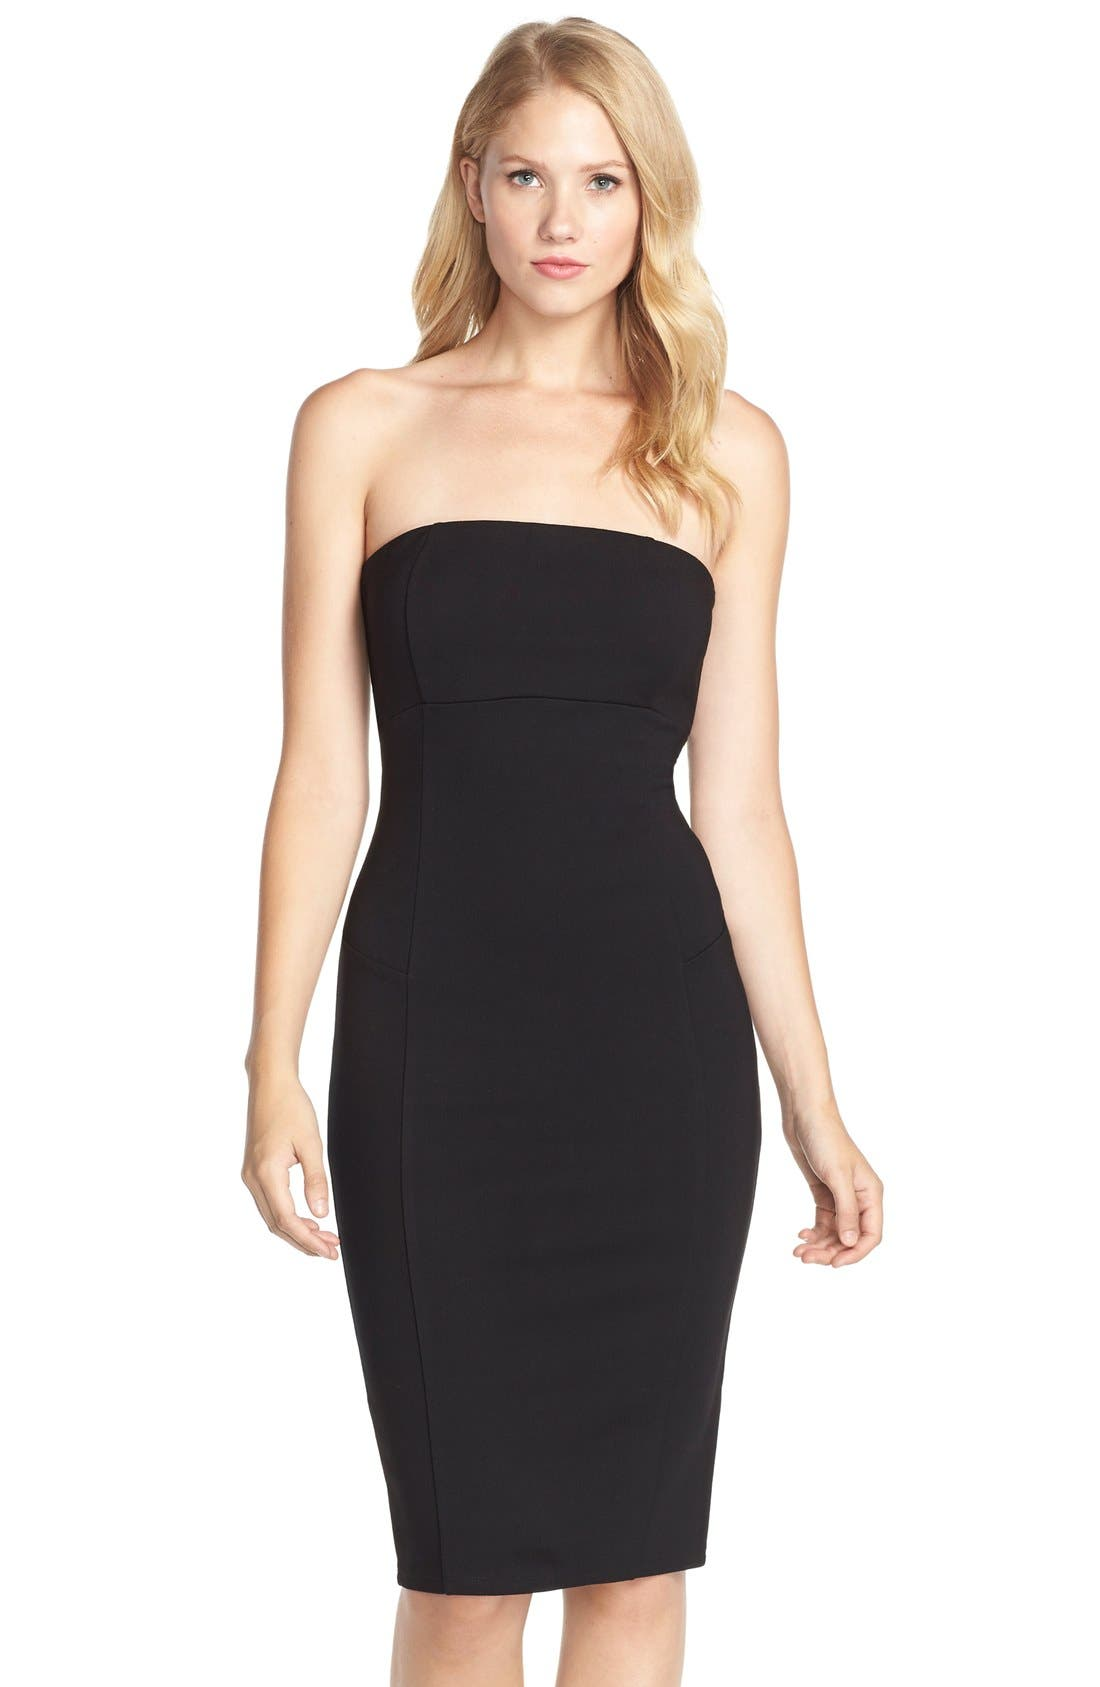 Alternate Image 1 Selected - Felicity & Coco Brianna Strapless Knit Body-Con Dress (Nordstrom Exclusive)